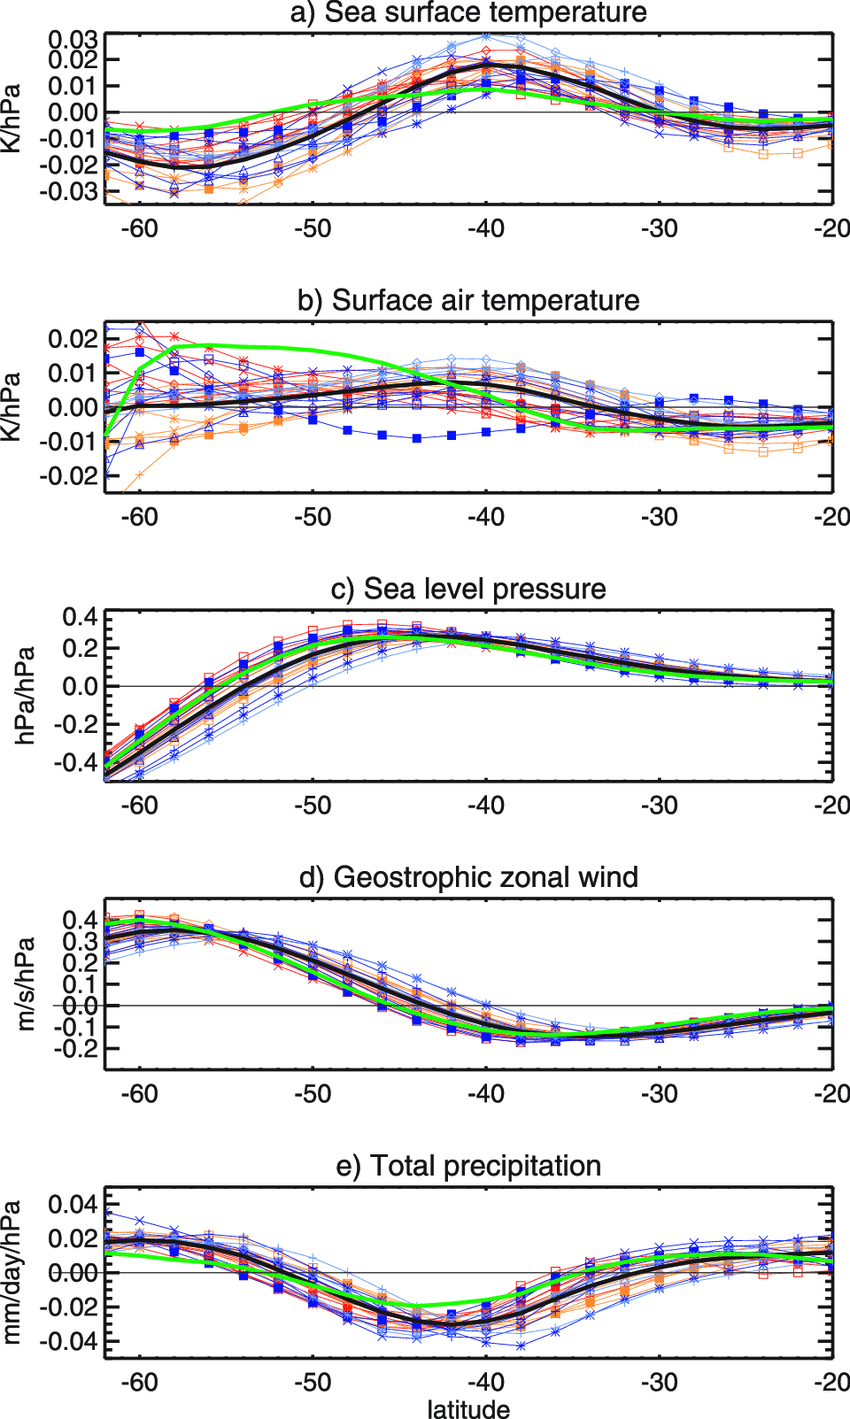 medium resolution of ocean only zonally averaged a sea surface temperature b surface